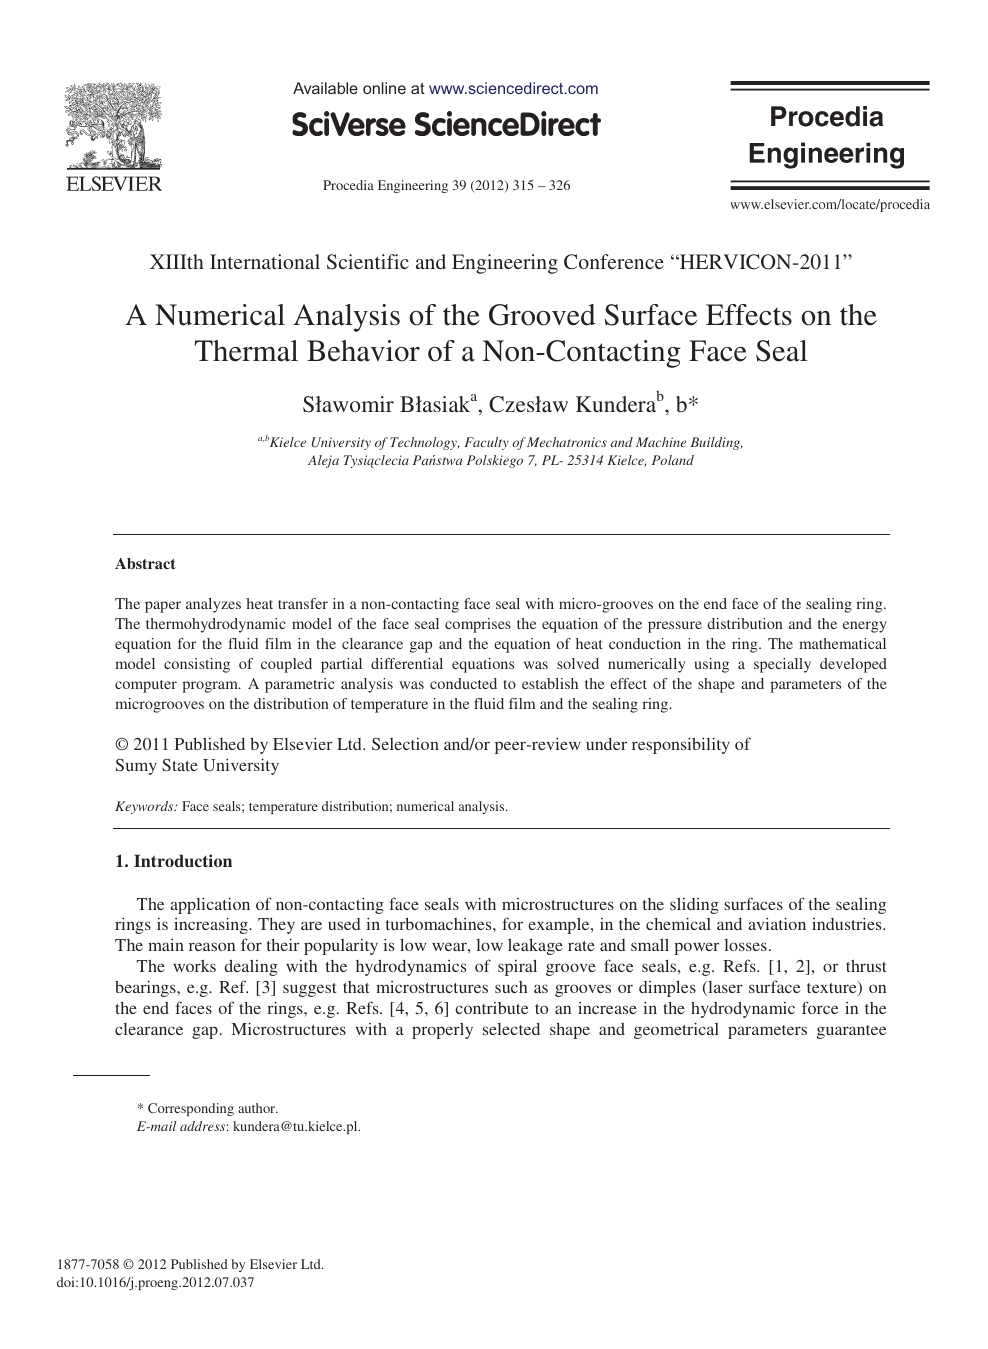 A Numerical Analysis of the Grooved Surface Effects on the Thermal